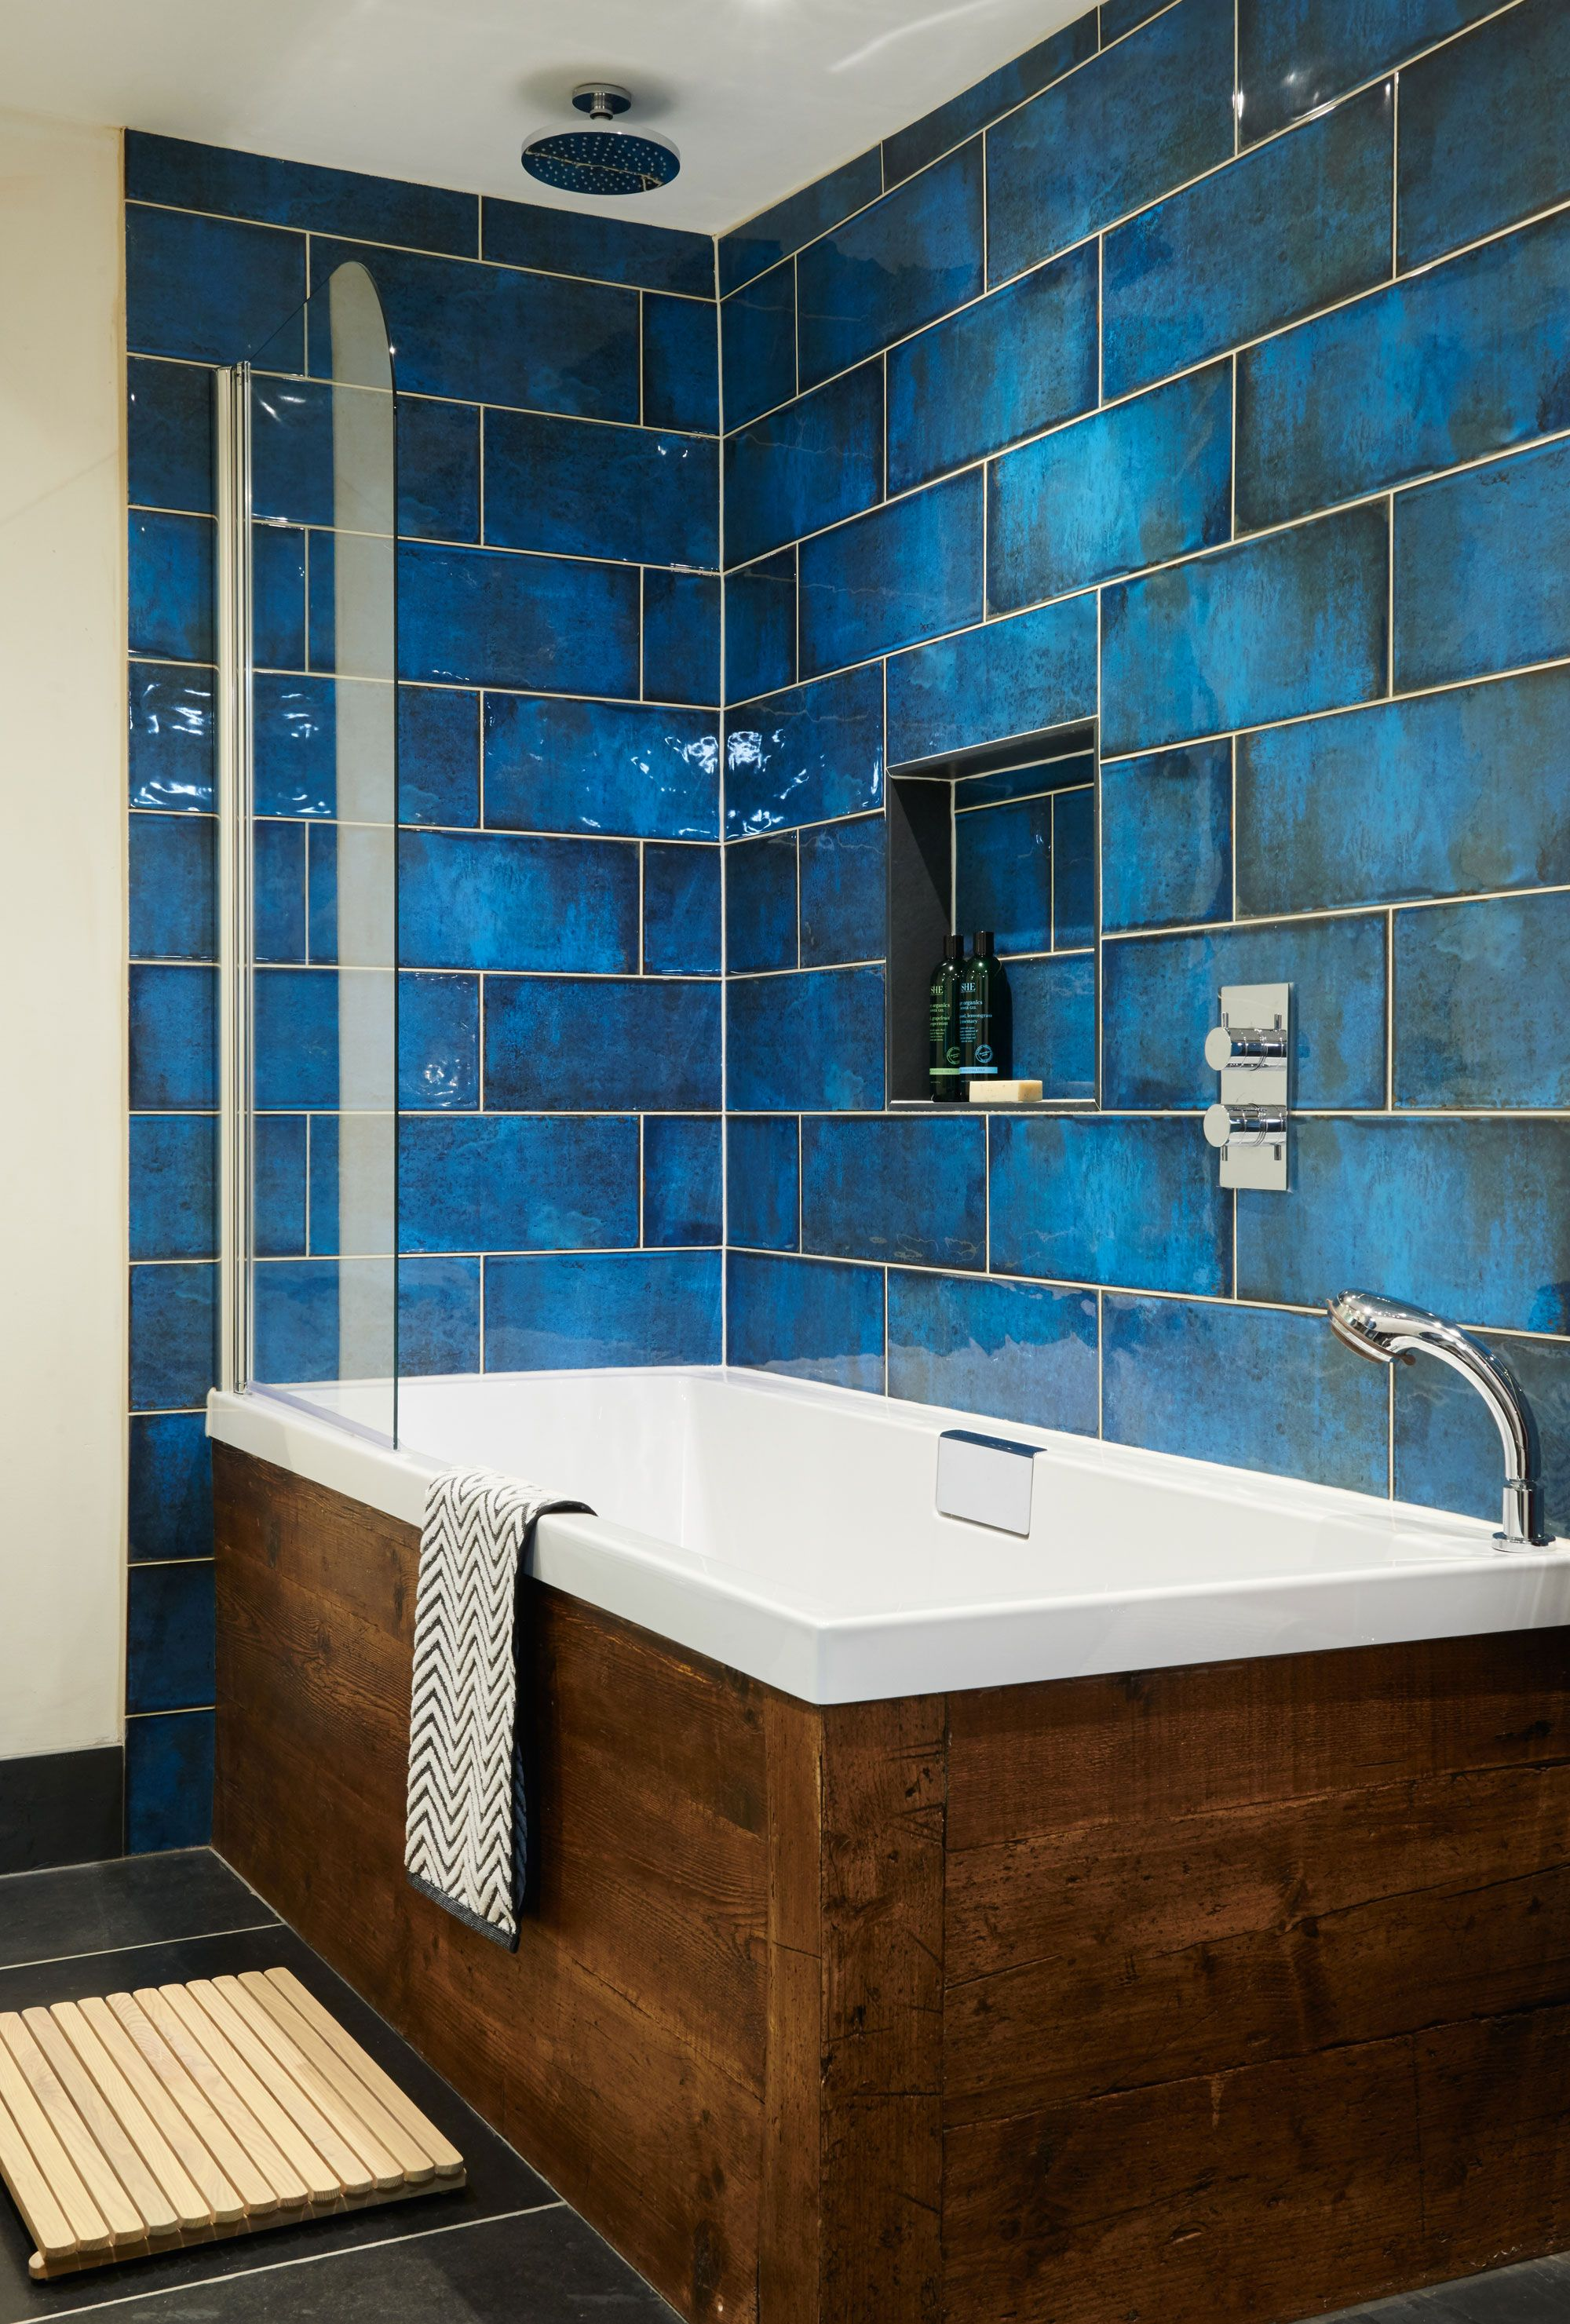 Montblanc Blue Ceramic Tile | Badkamer ideeën | Pinterest | Factors ...